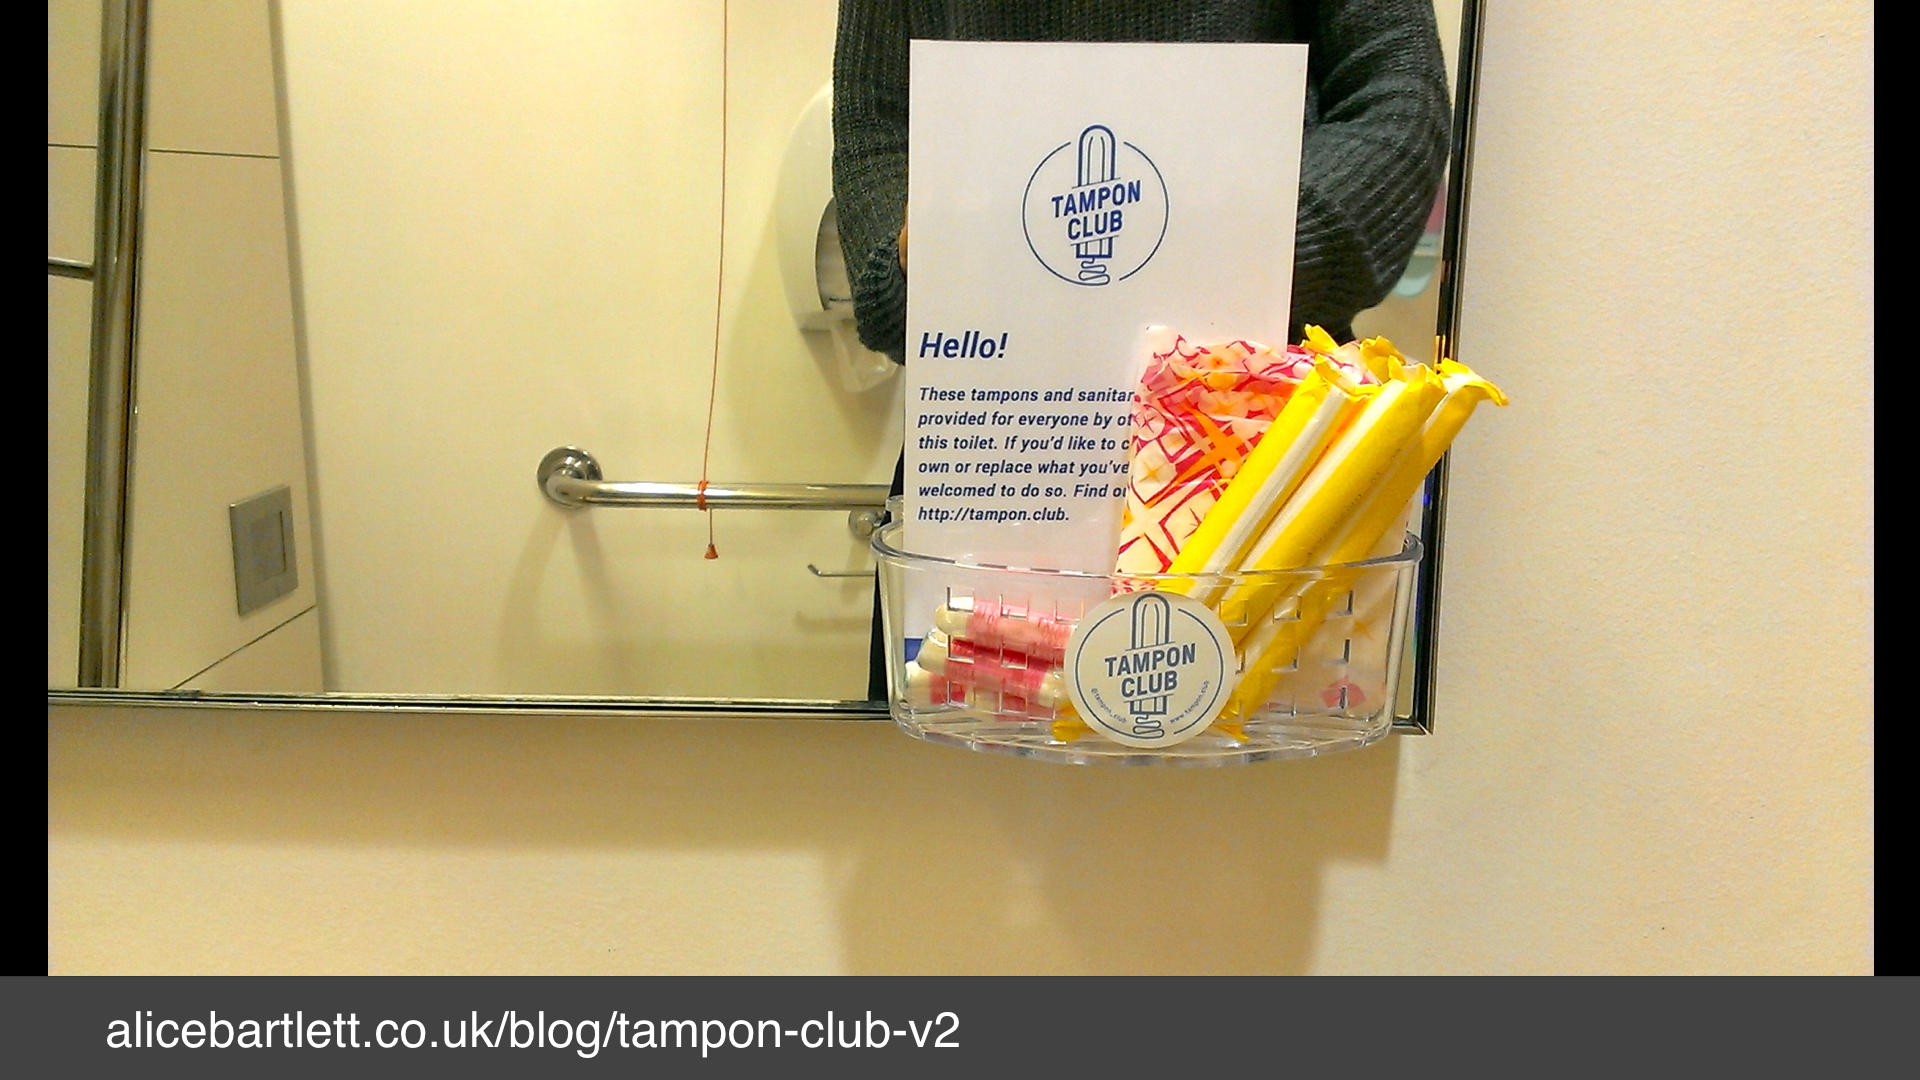 A photo of a nicely labelled basket of tampons in a bathroom